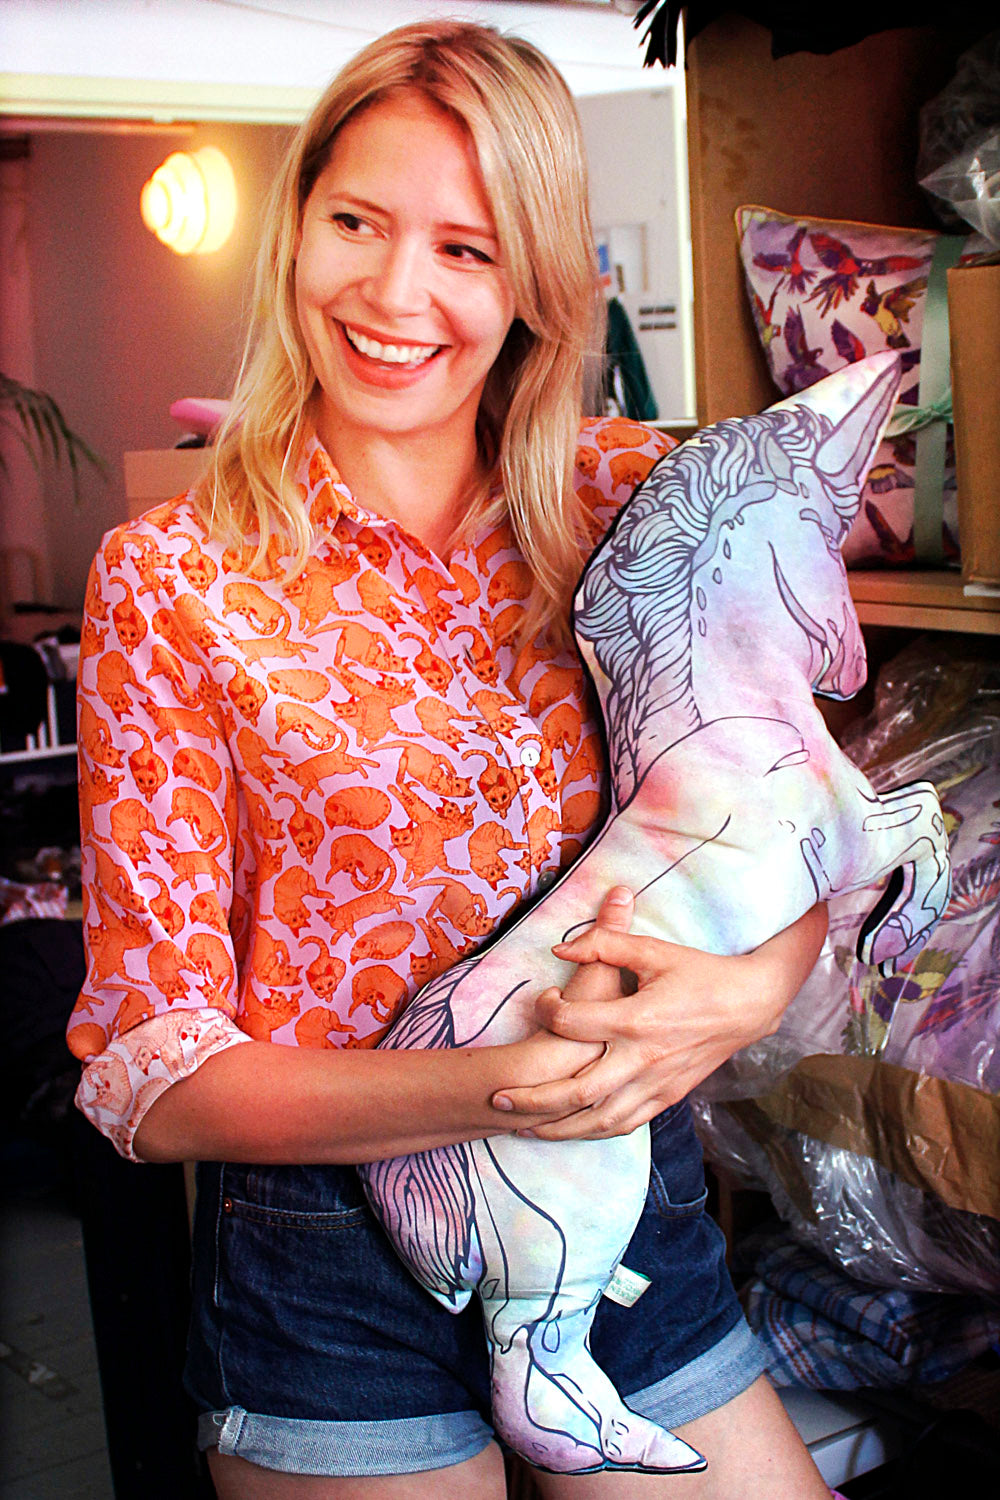 silken favours, vicki murdoch, interview, hackney, scarves, pillows, patterns, designer, donna ida, london fashion, london blog, london style, blogger style, blogger fashion,